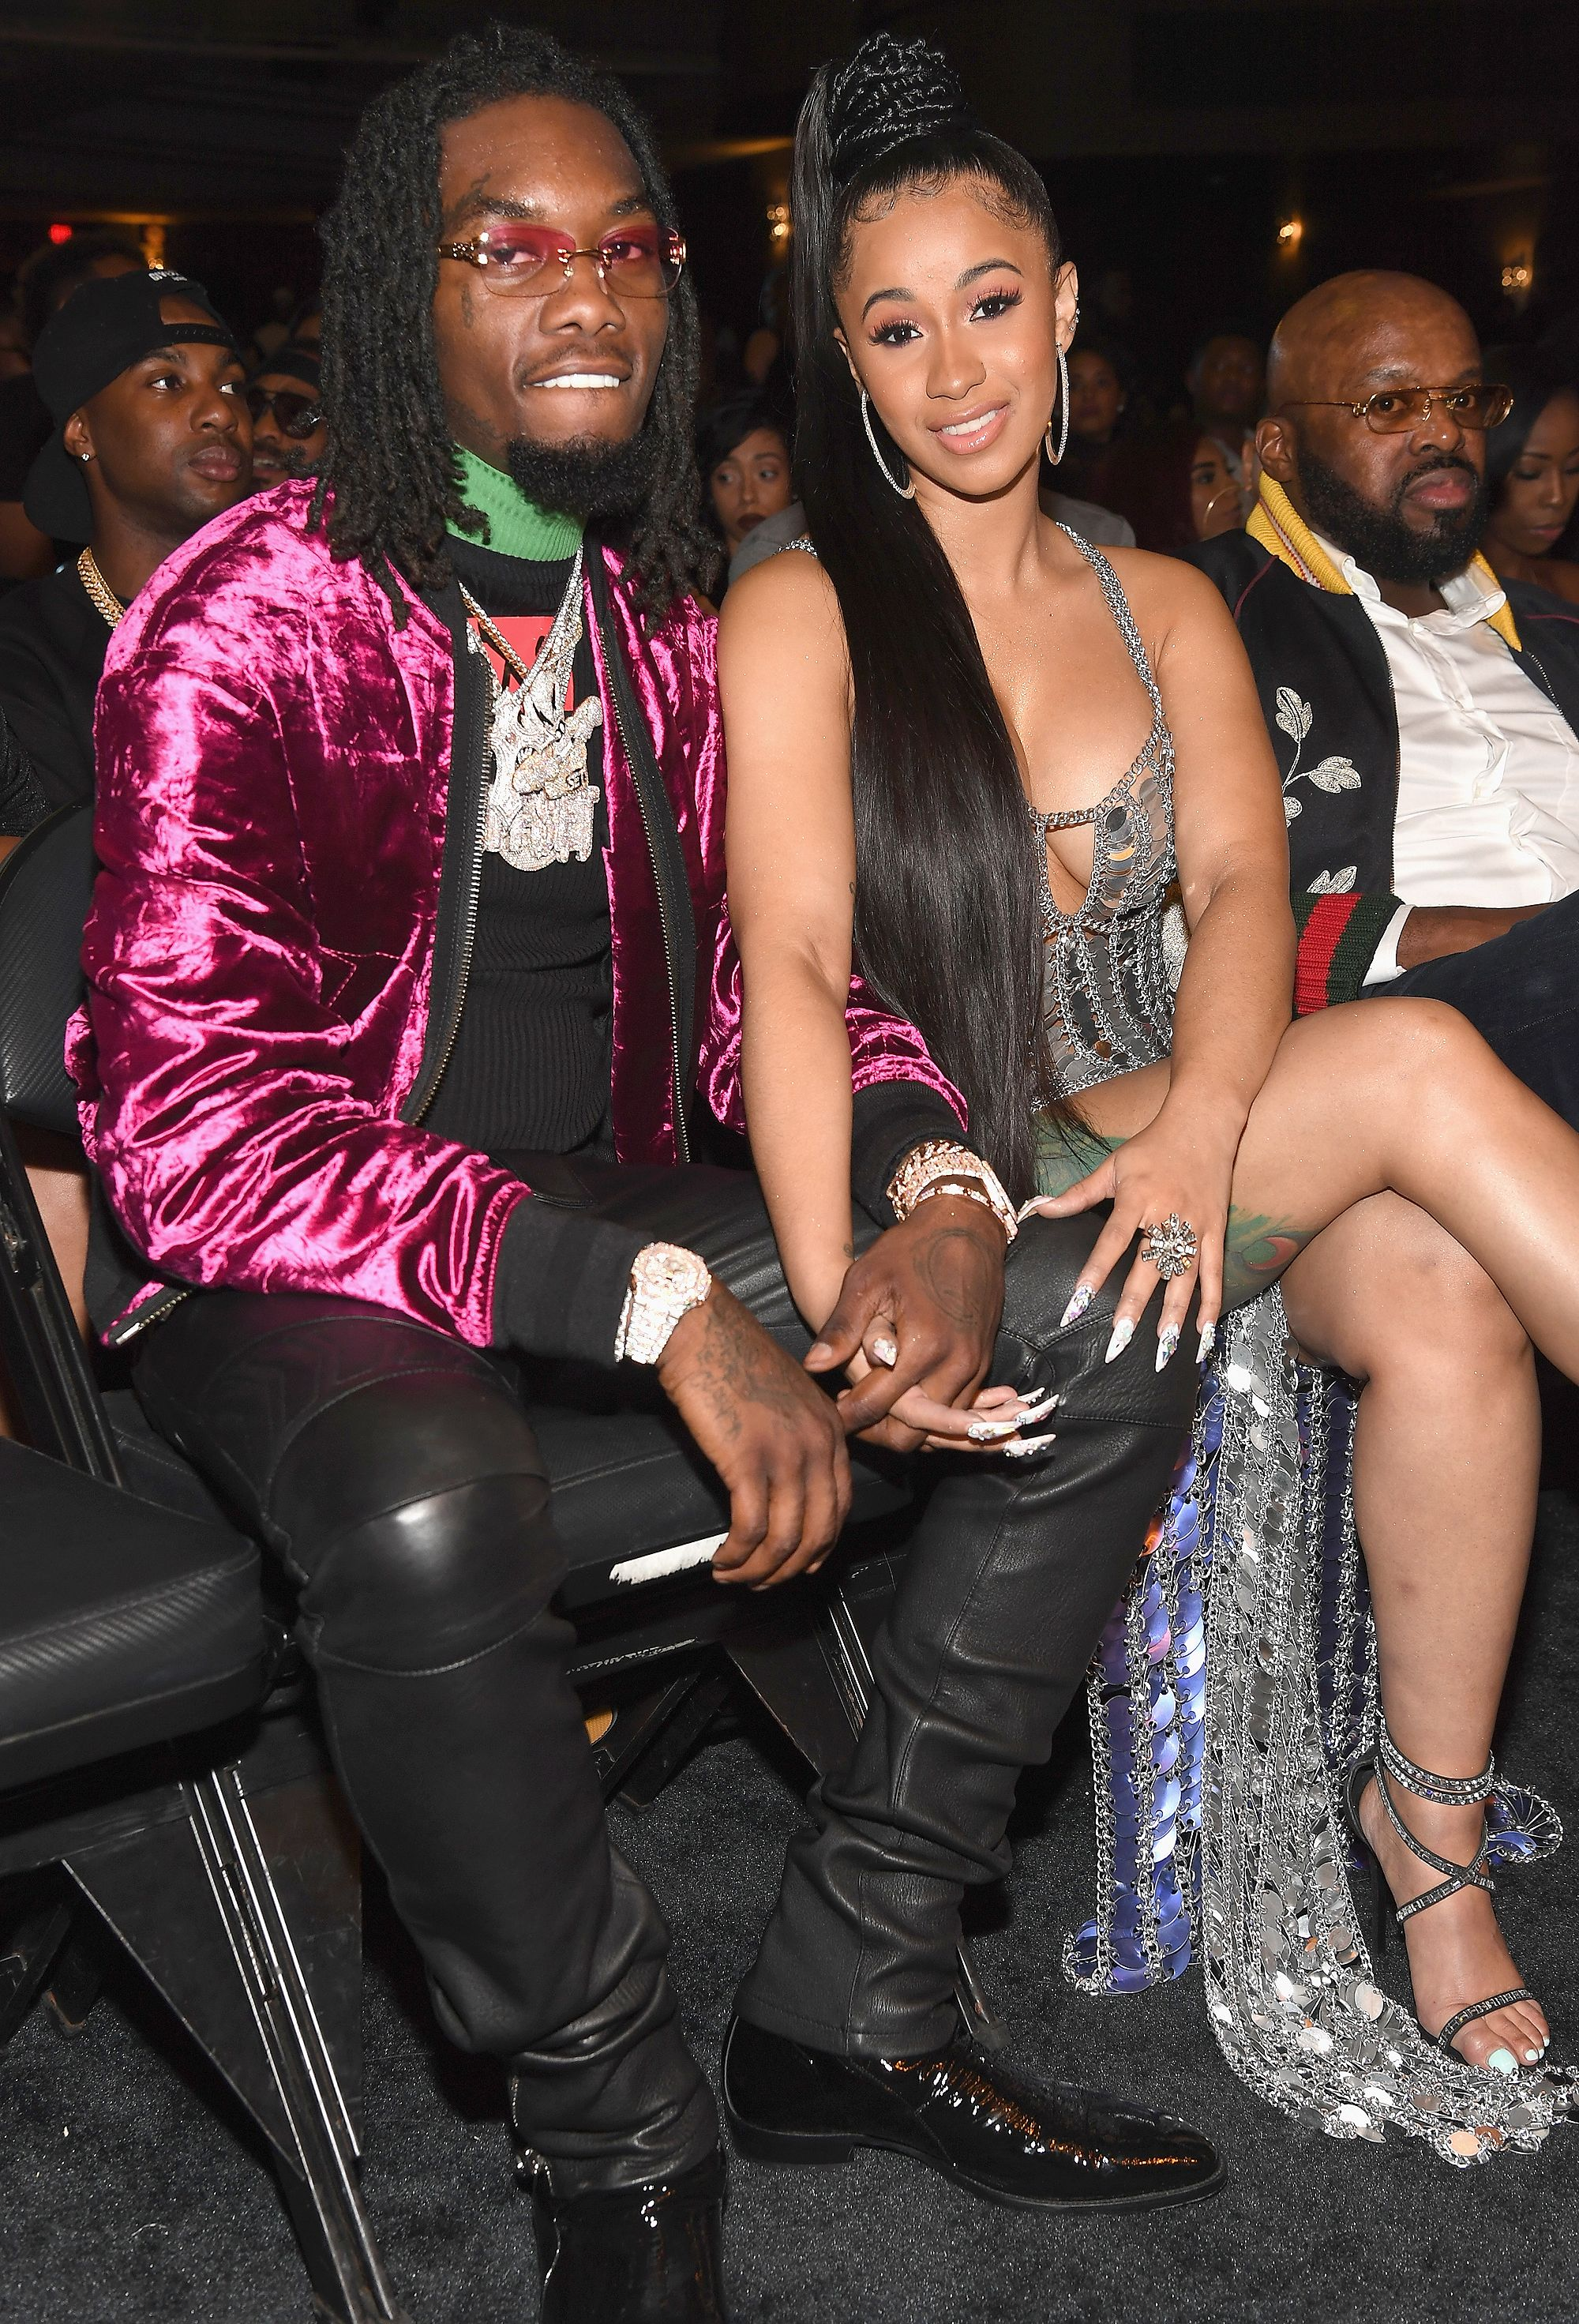 Cardi B Reveals Baby On The Way With Fiancé Offset During